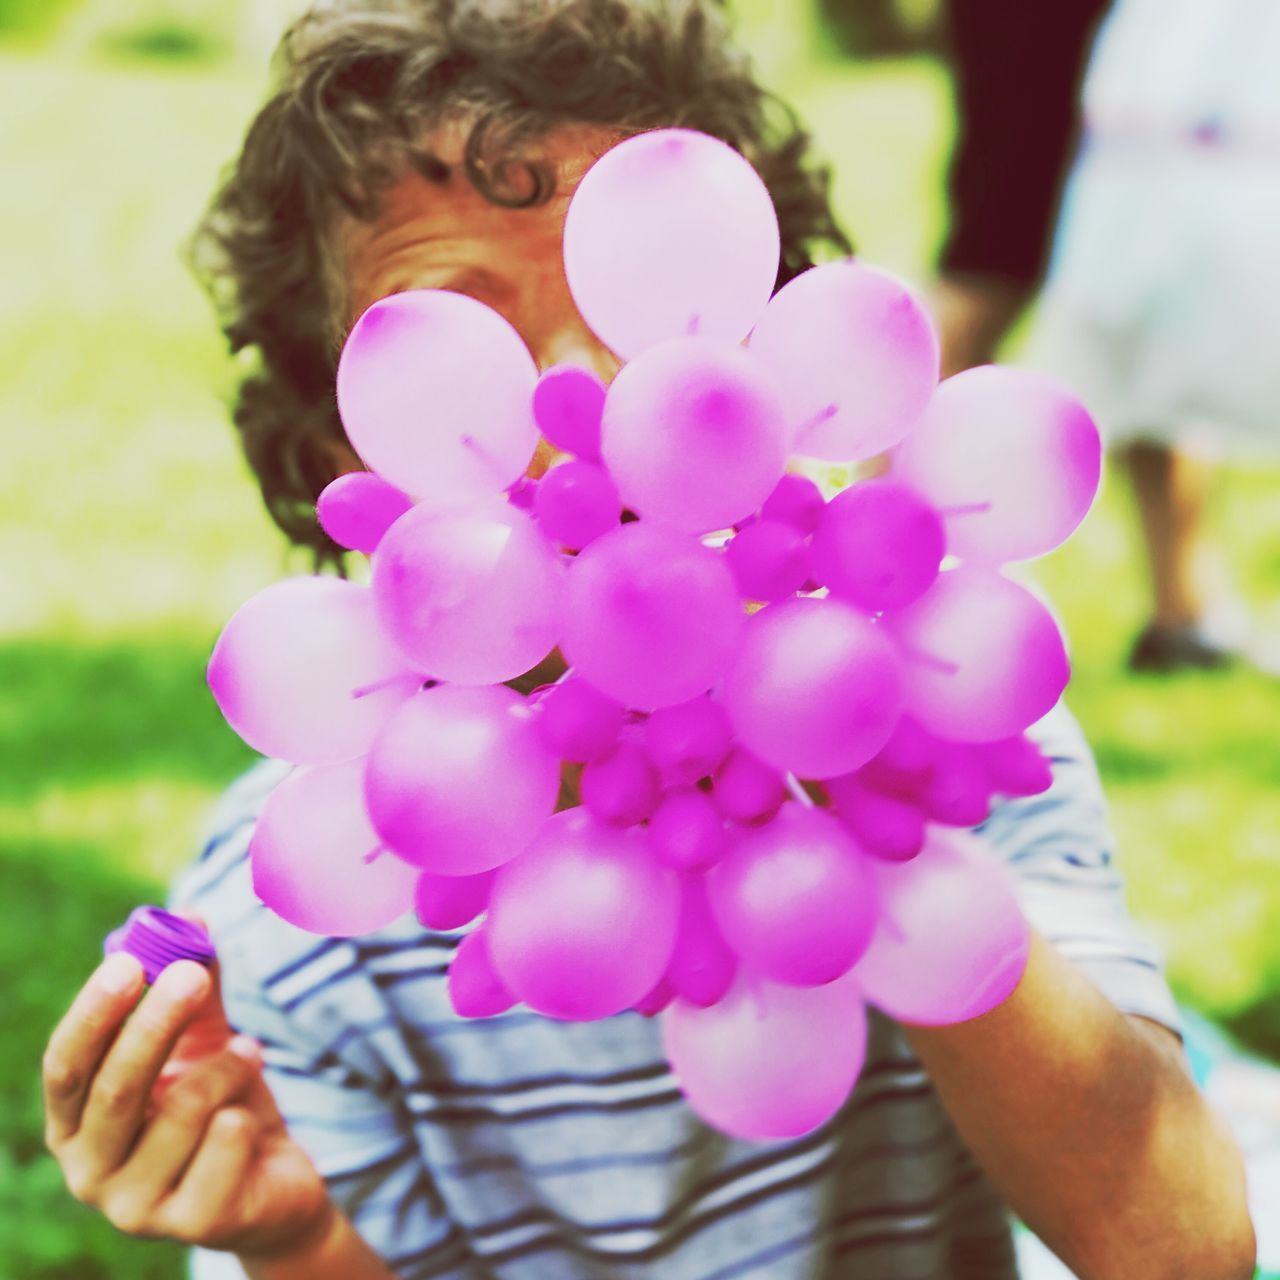 real people, one person, holding, human hand, outdoors, focus on foreground, day, pink color, human body part, childhood, leisure activity, lifestyles, park - man made space, flower, nature, close-up, beauty in nature, fragility, women, balloon, freshness, grass, flower head, people